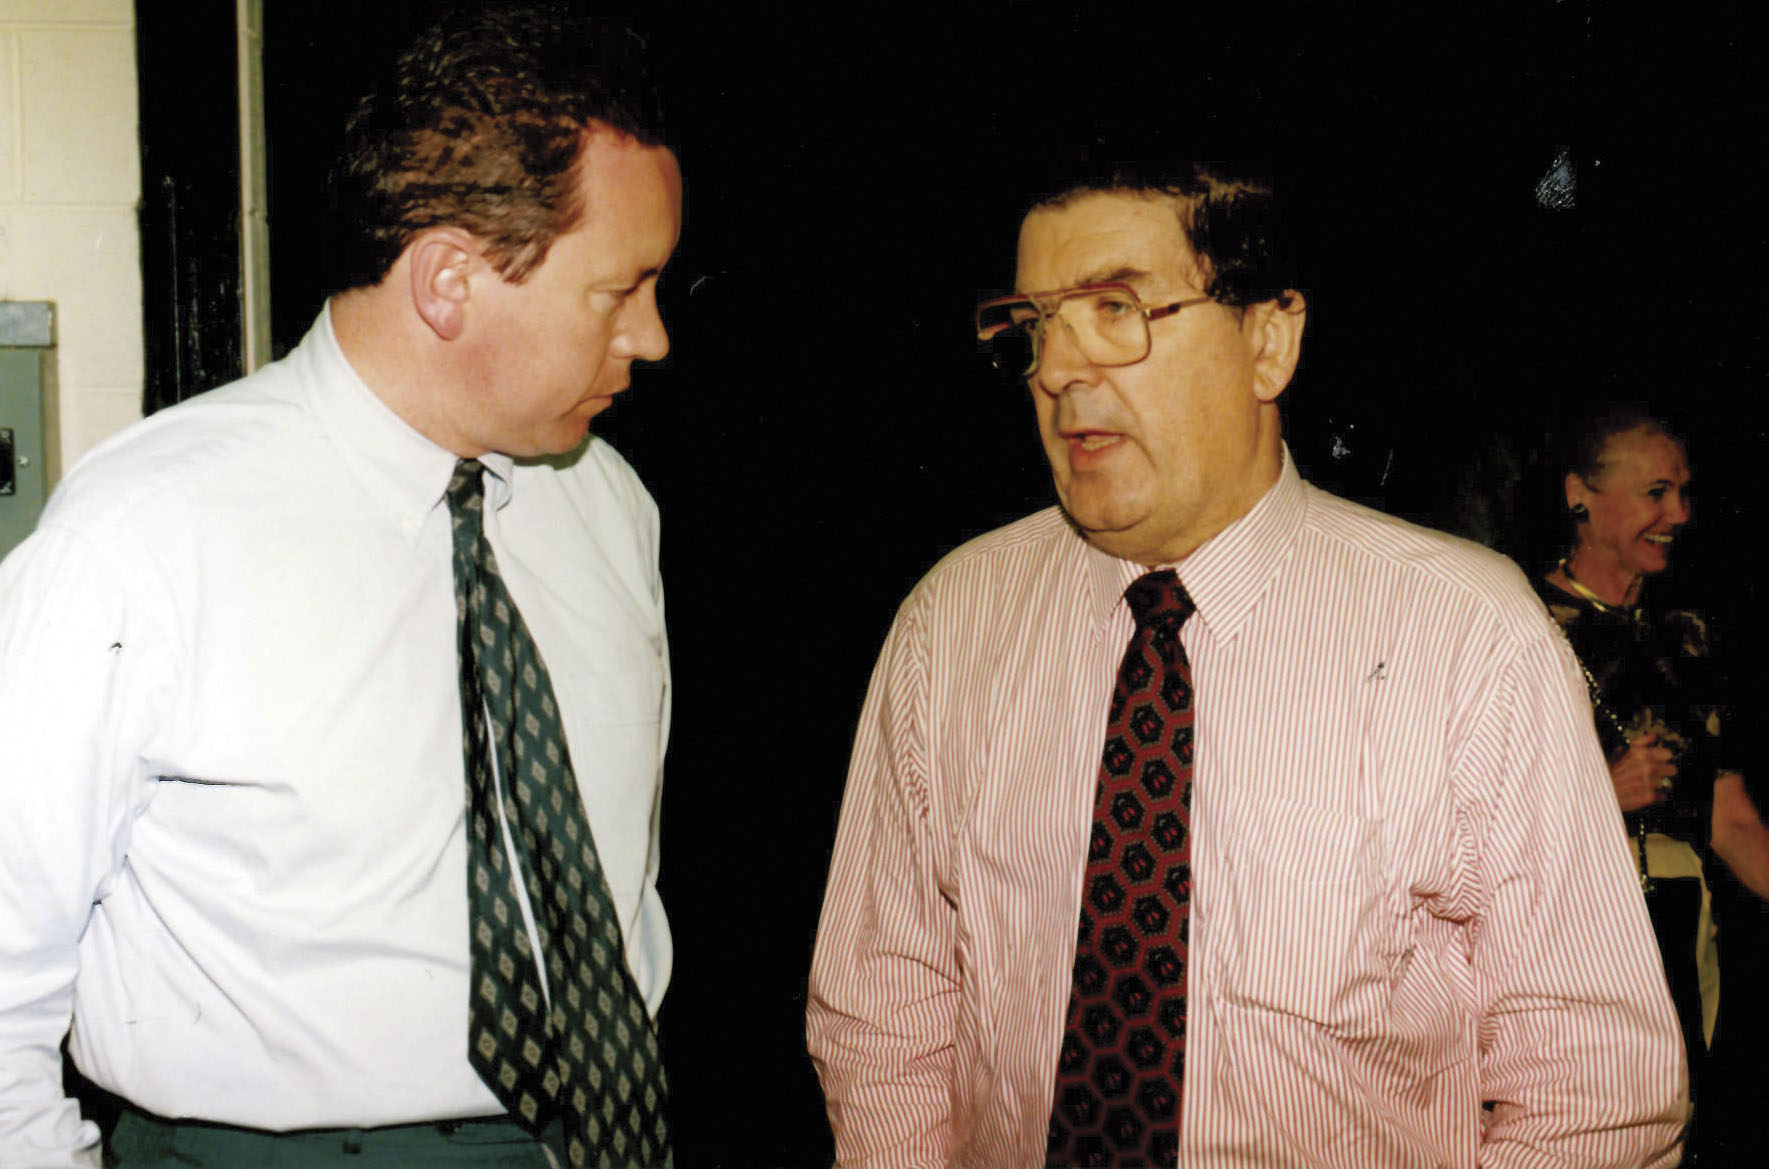 With Nobel Peace Prize winner John Hume.